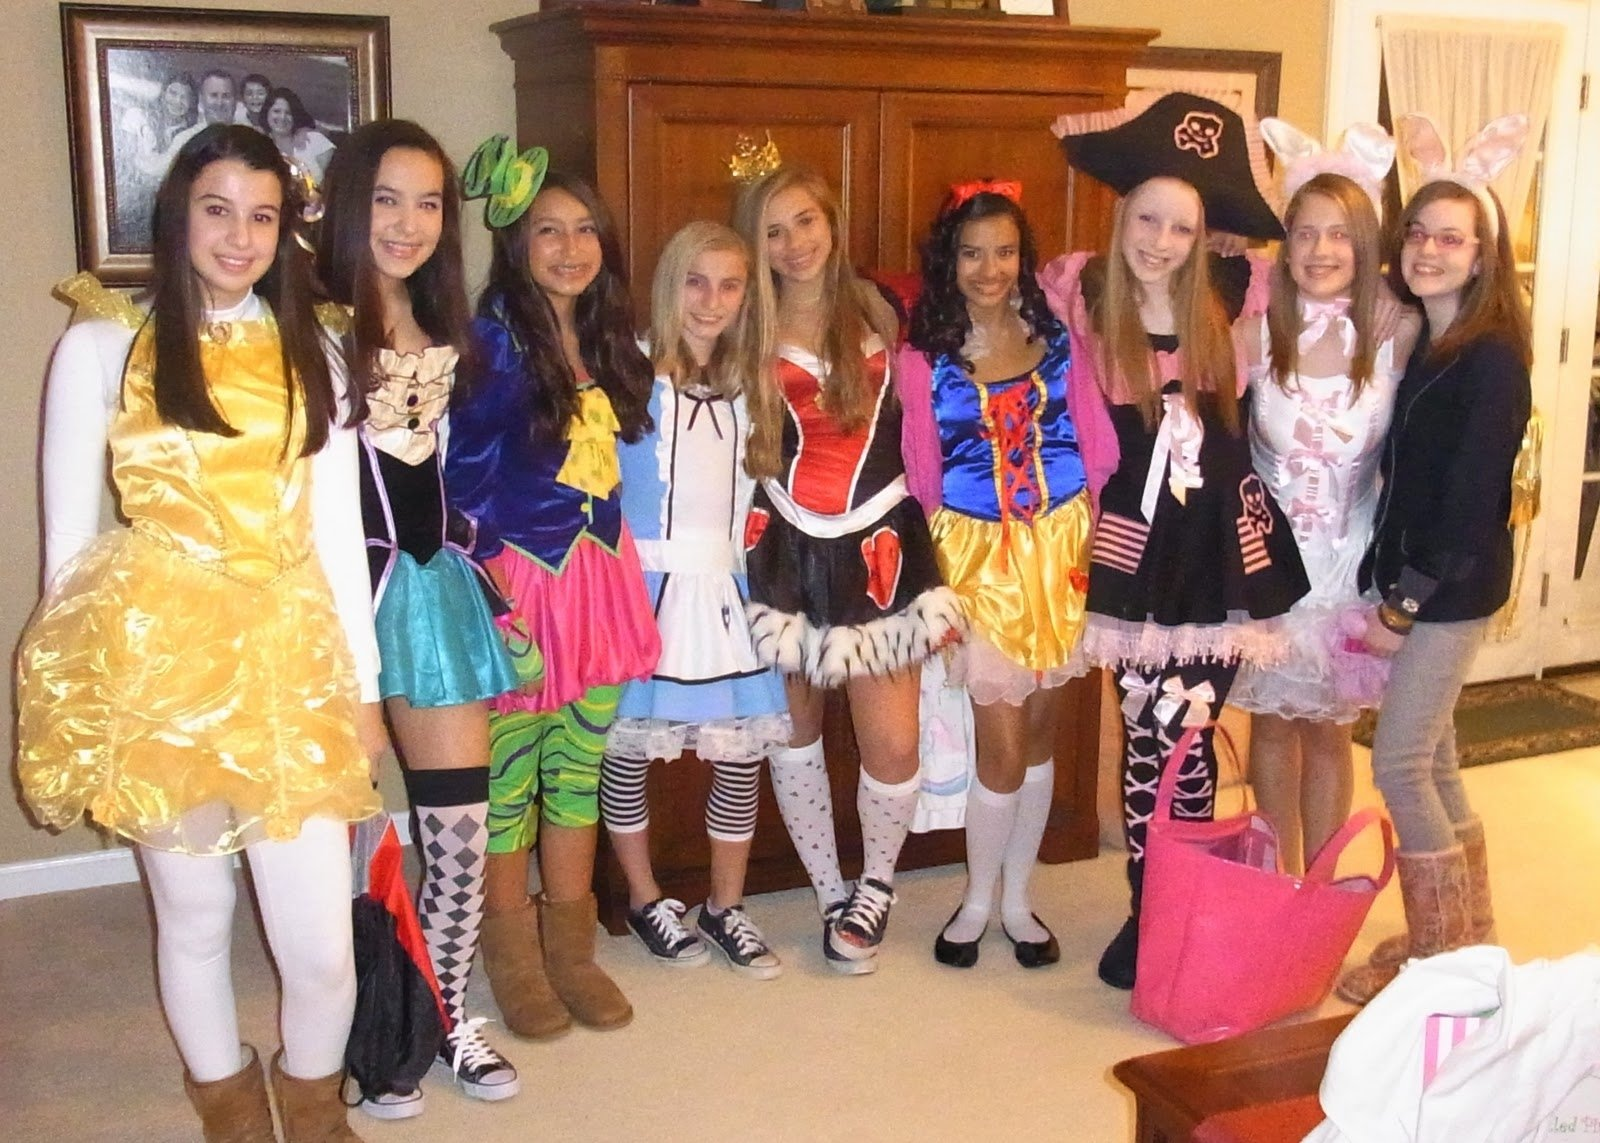 10 Awesome Sexy Group Halloween Costume Ideas Pinflankkks On Cool Outfits 5